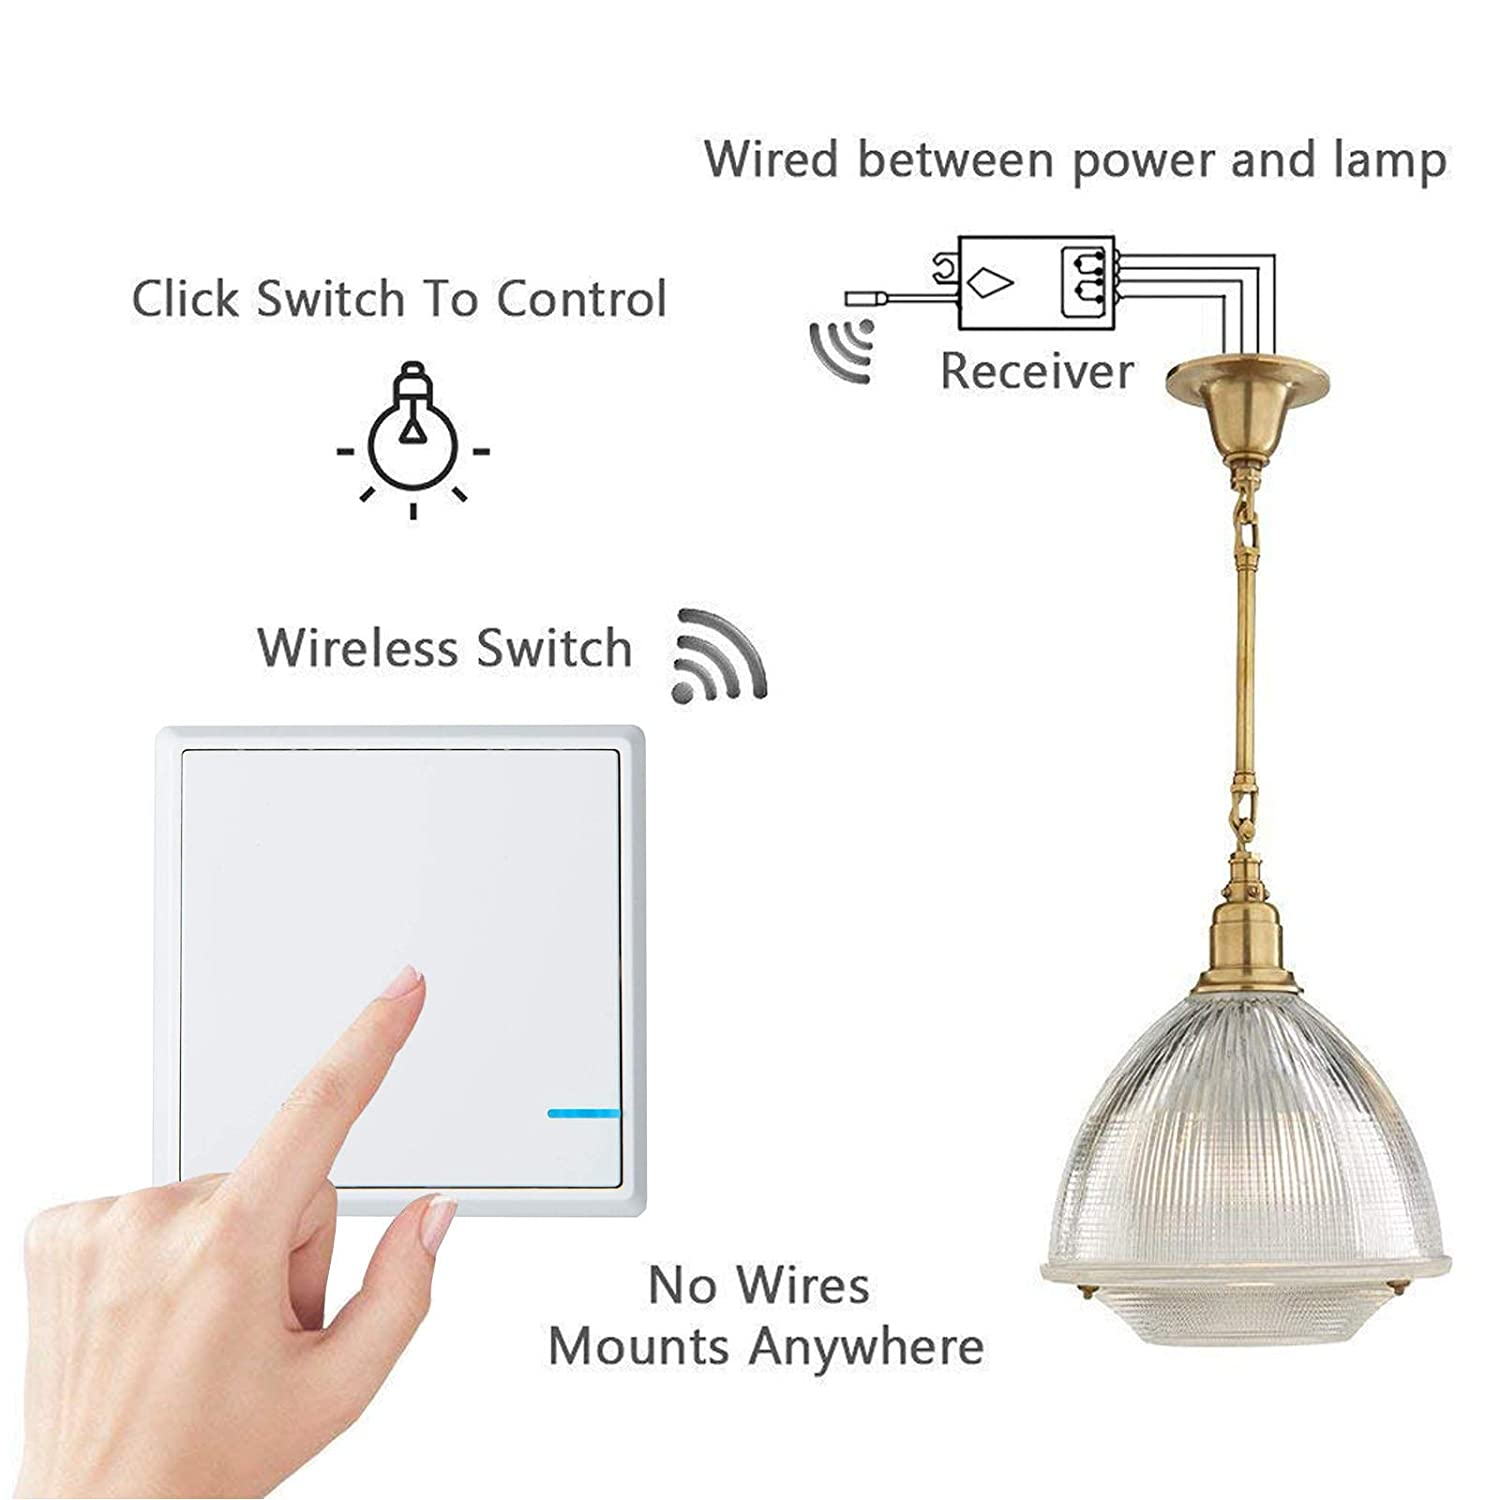 Greencycle Wireless Lights Switch Kit Control Lamp On Off Dual Fan Cycle Wiring Diagram Controller With Receiver Remote House Lighting Appliances 2 Pack